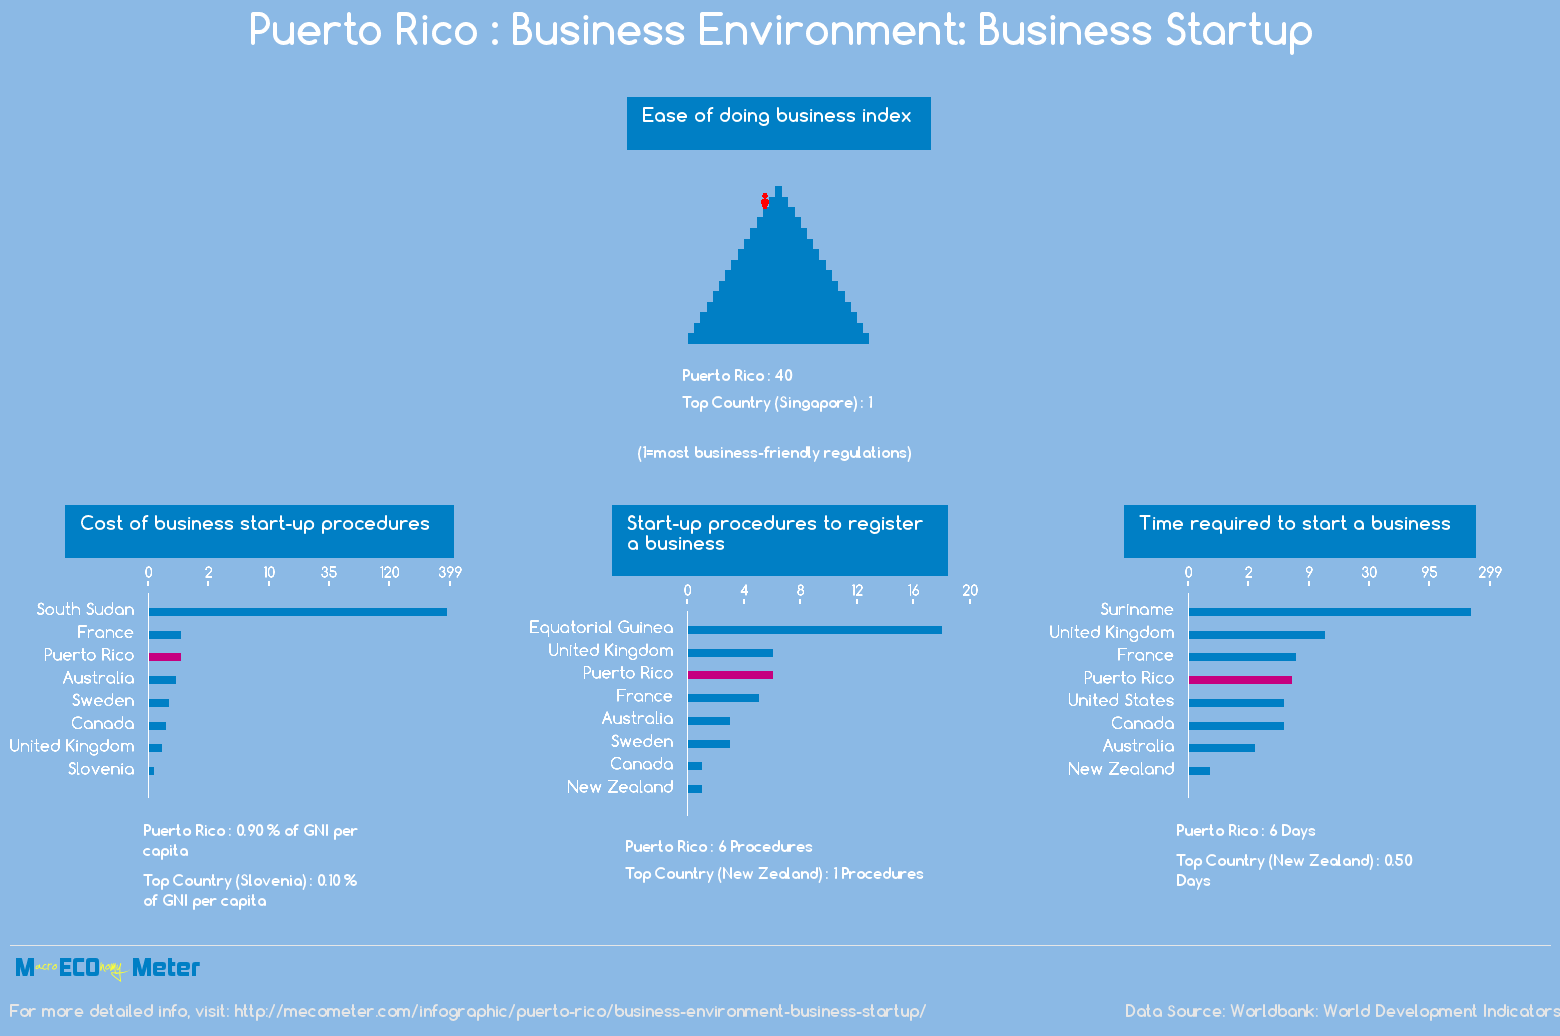 Puerto Rico : Business Environment: Business Startup